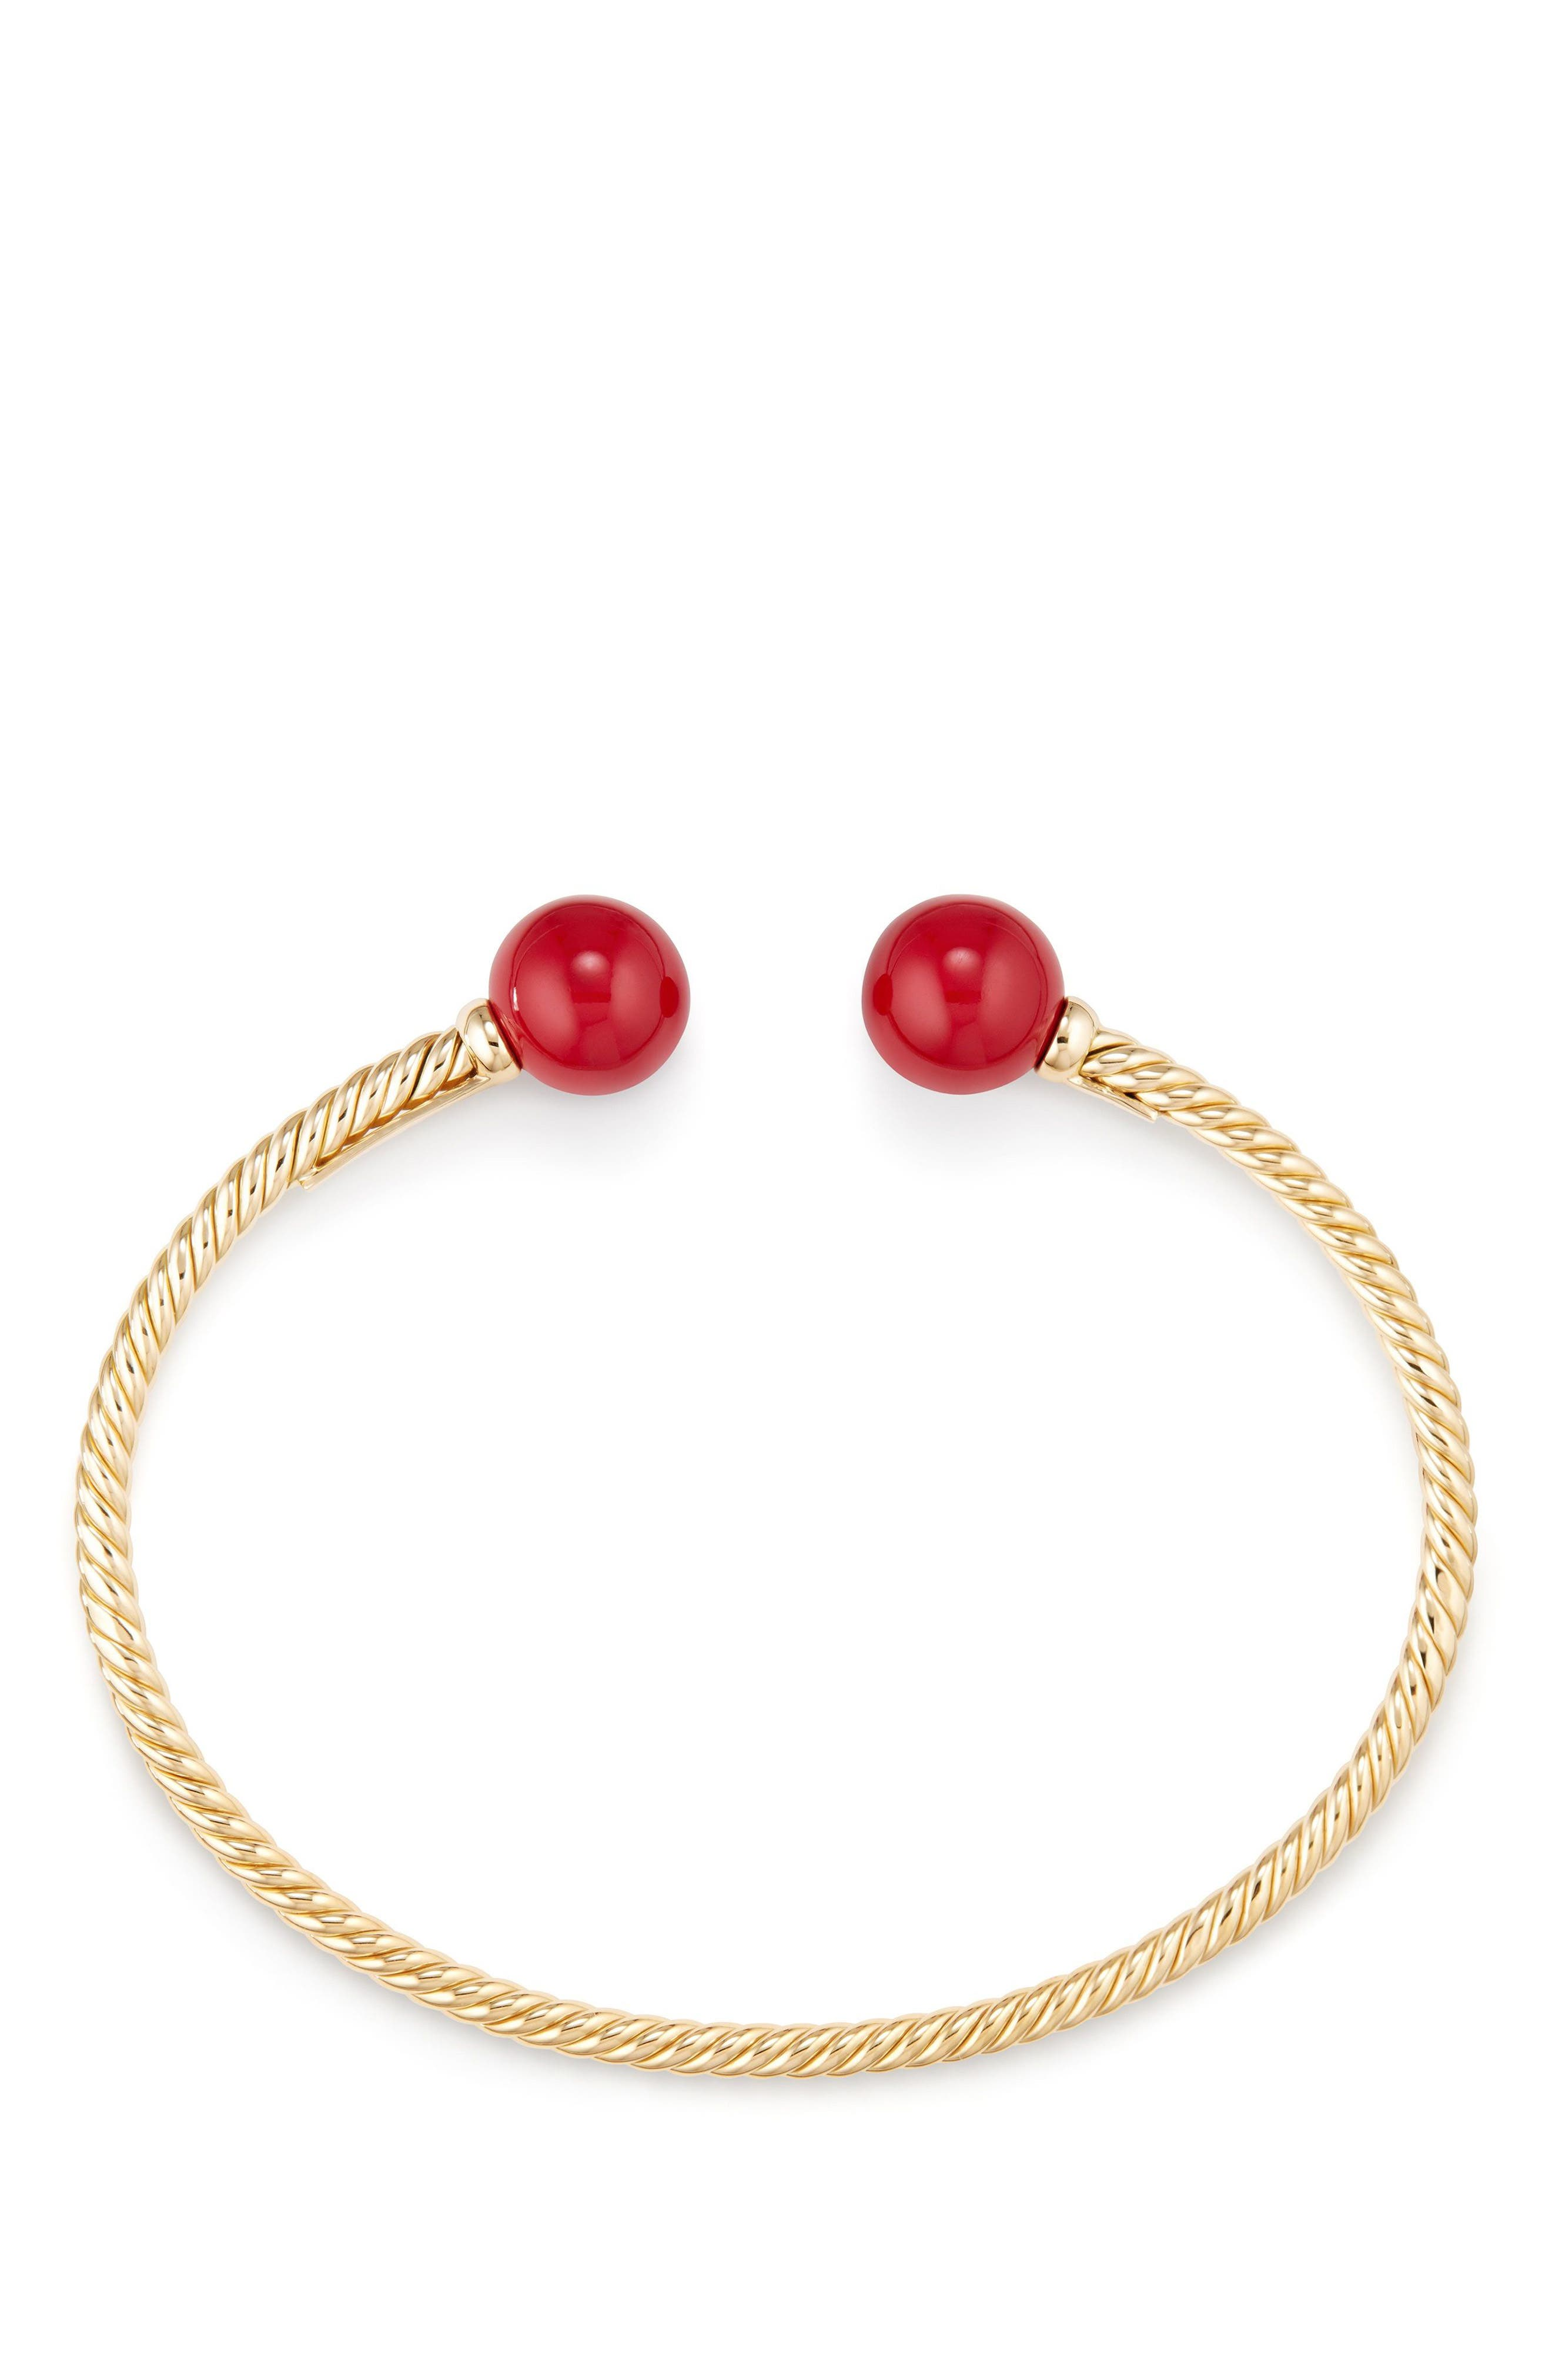 Solari Bead Bracelet with 18K Gold and Red Enamel,                             Alternate thumbnail 2, color,                             Yellow Gold/ Red